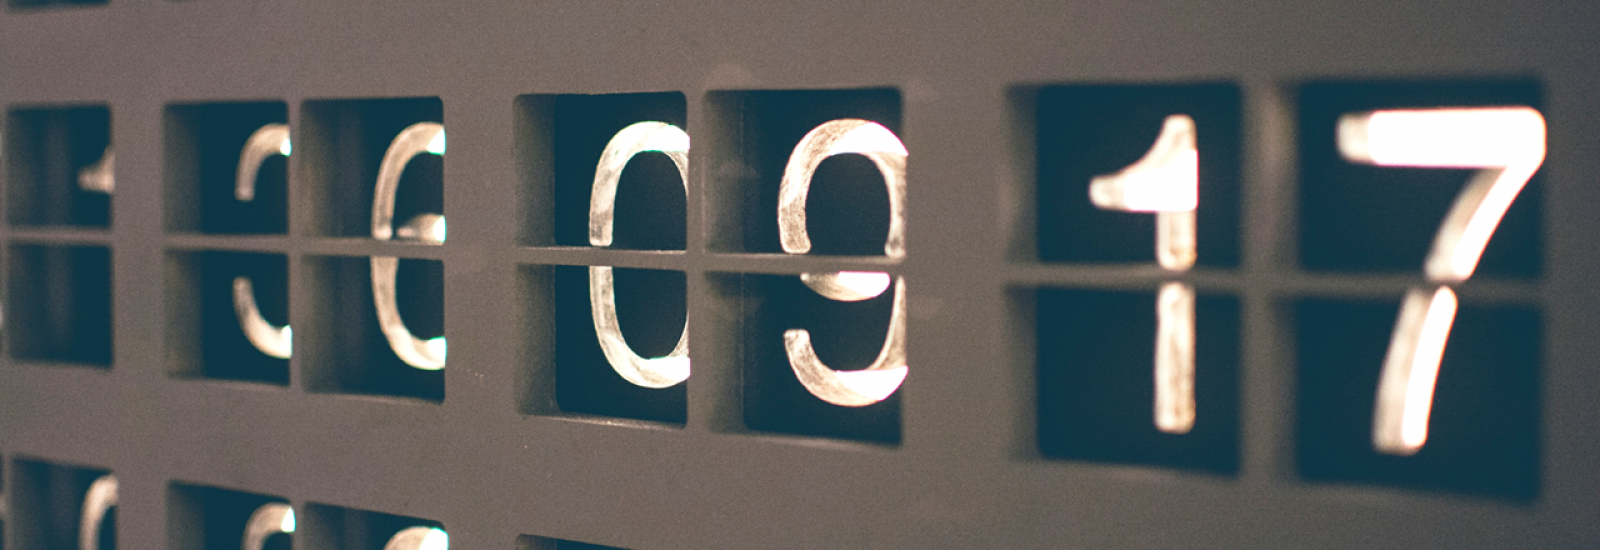 Selection of numbers on a display board